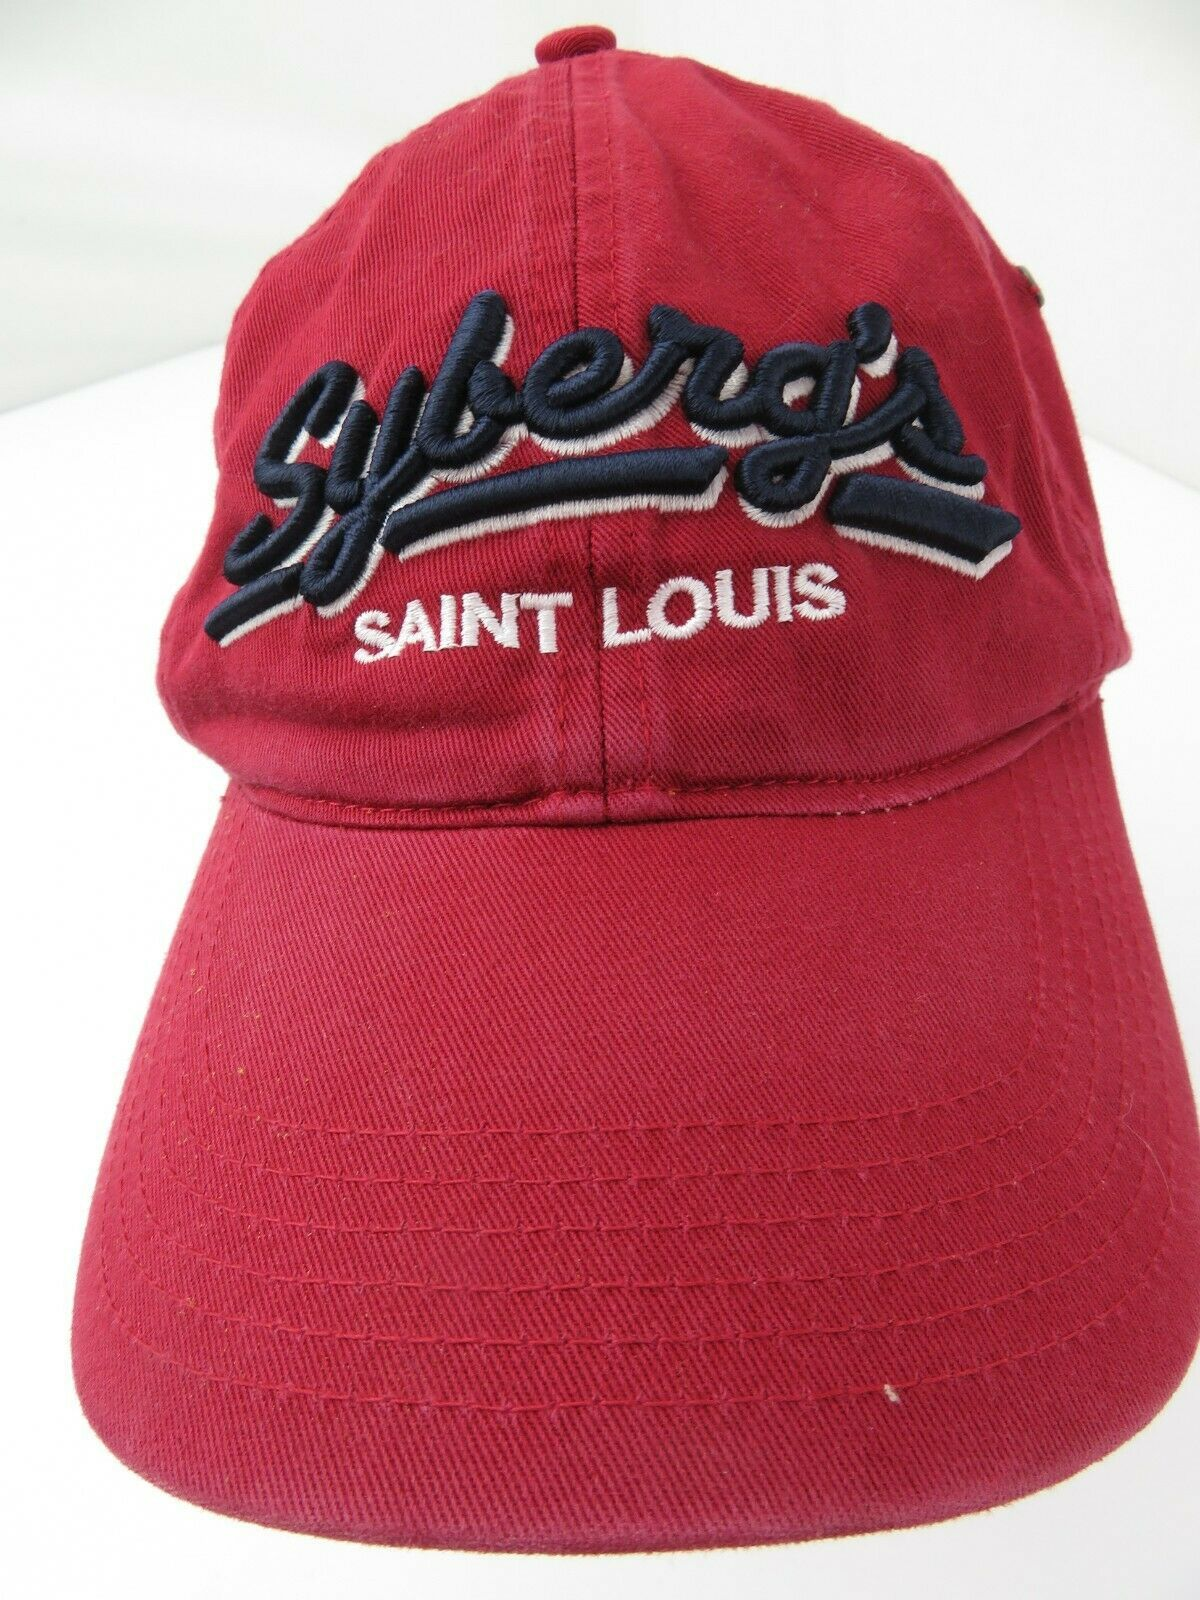 Primary image for Syberg's St Louis Restaurant Adjustable Adult Cap Hat